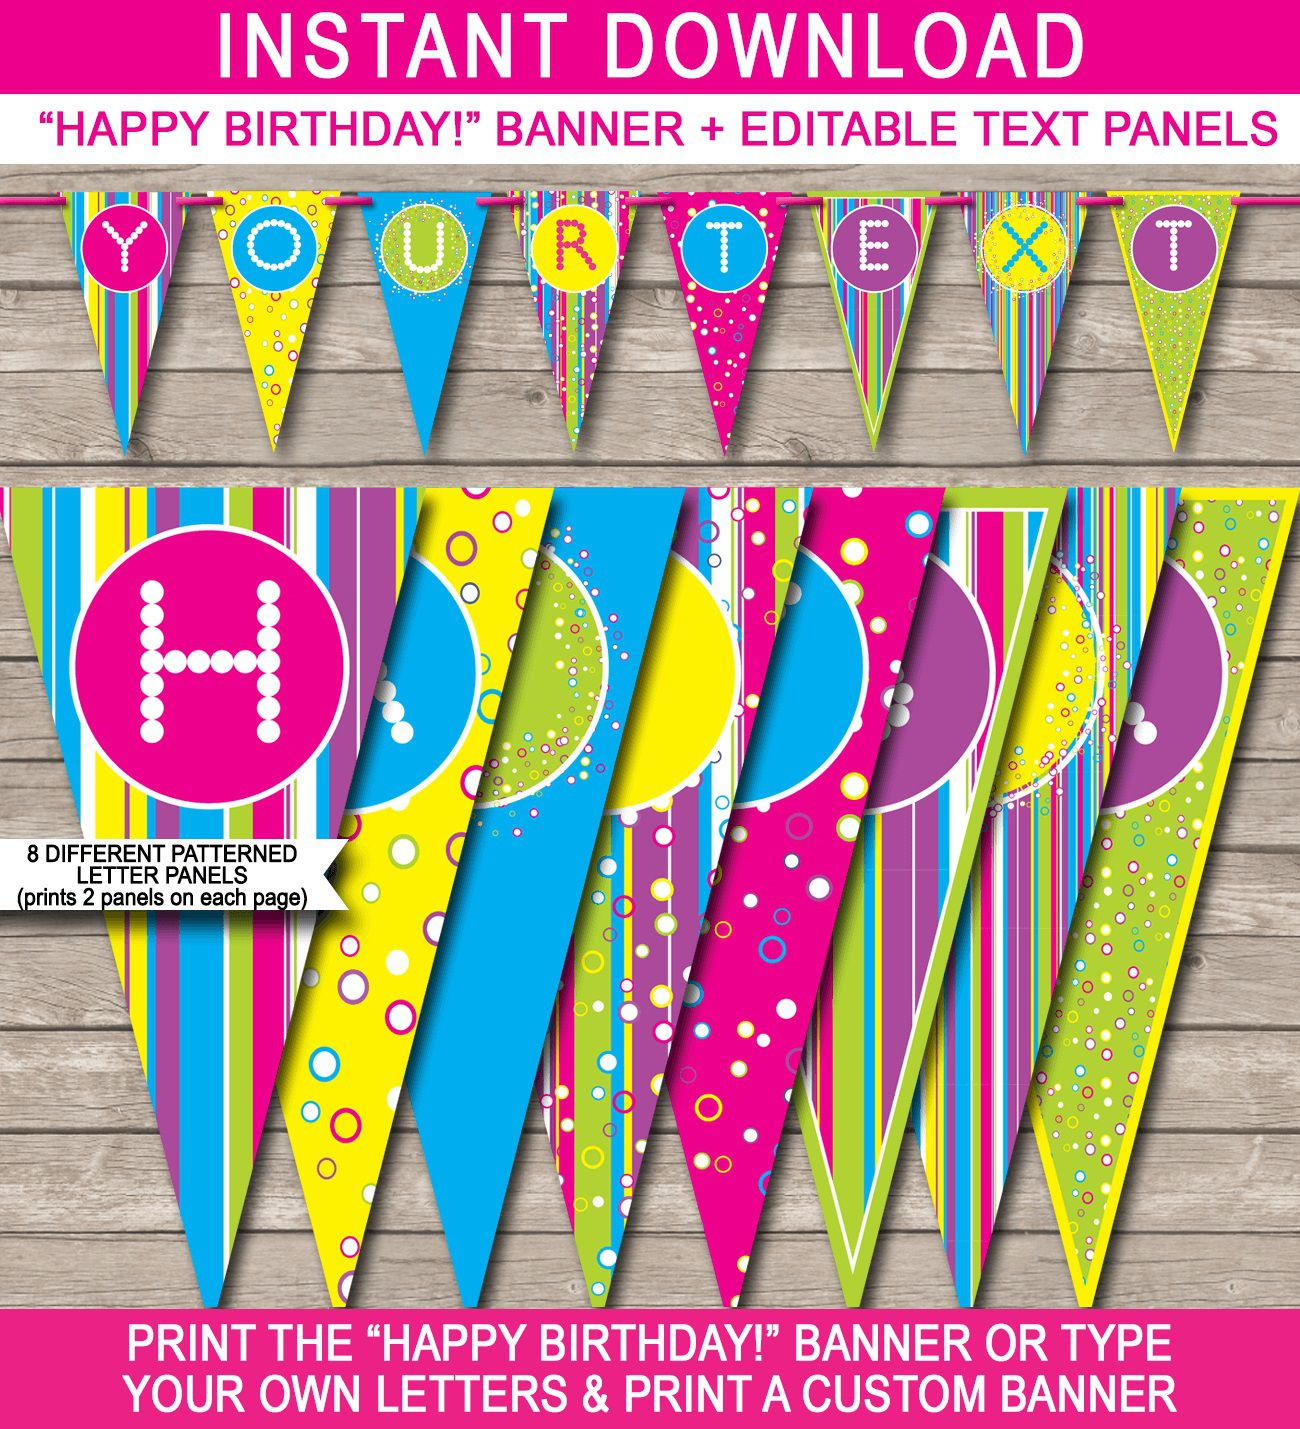 004 Simple Happy Birthday Banner Template Image  Publisher Editable PdfFull